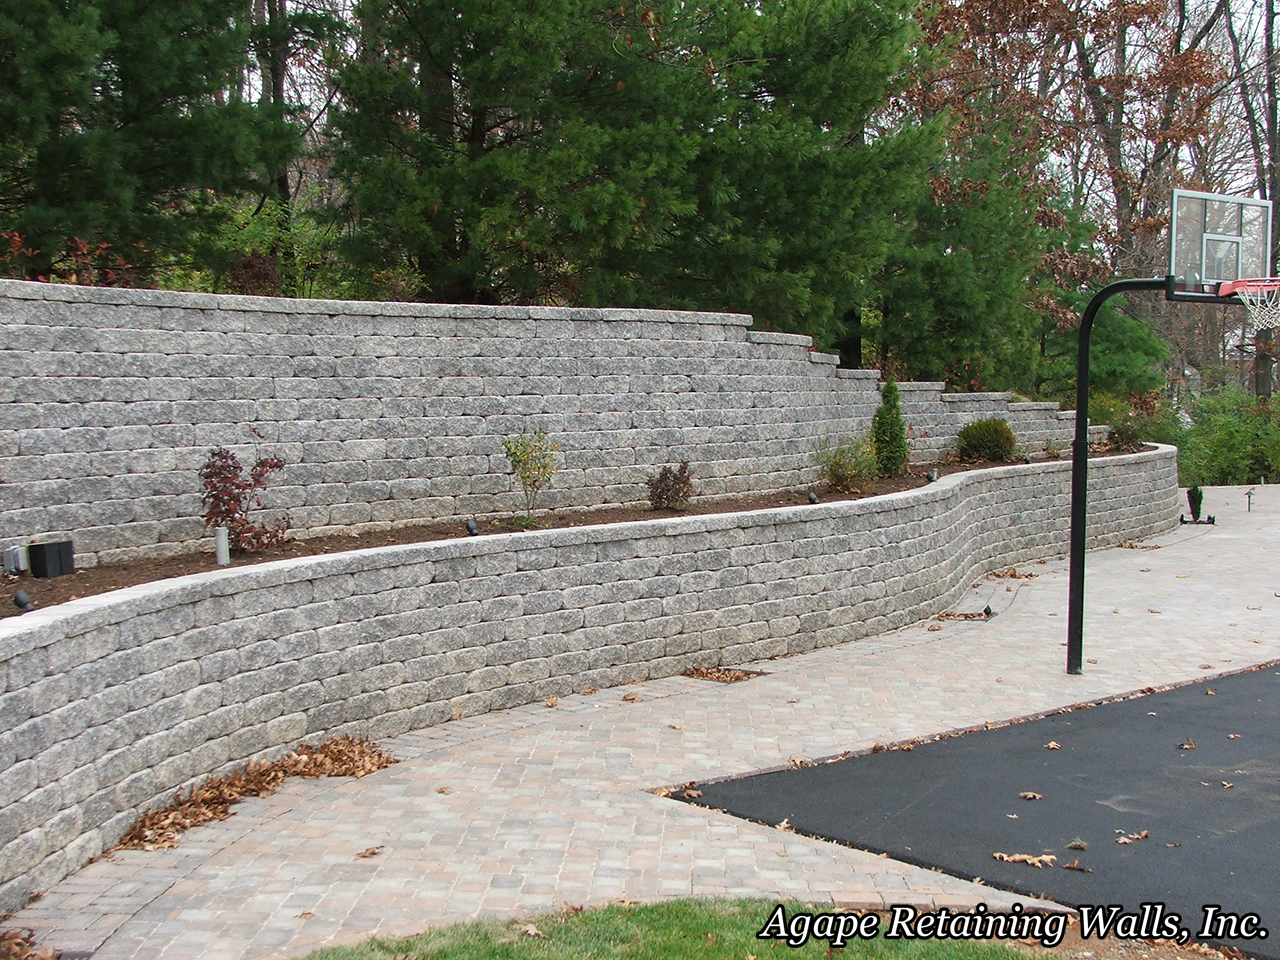 Agape retaining walls inc terrace photo album 1 for Terrace wall design ideas